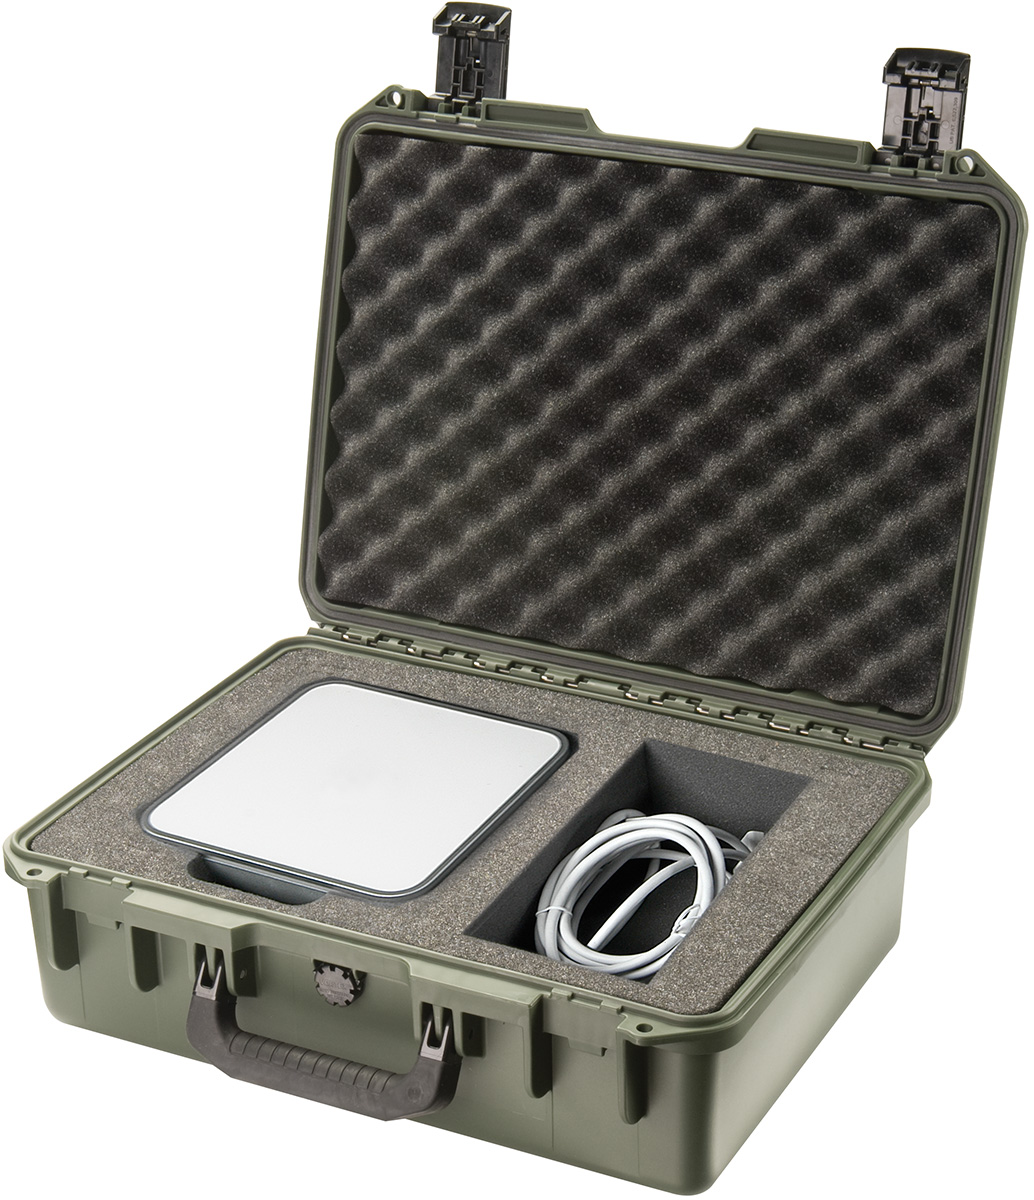 pelican peli products iM2400 hardigg storm 2400 hard case